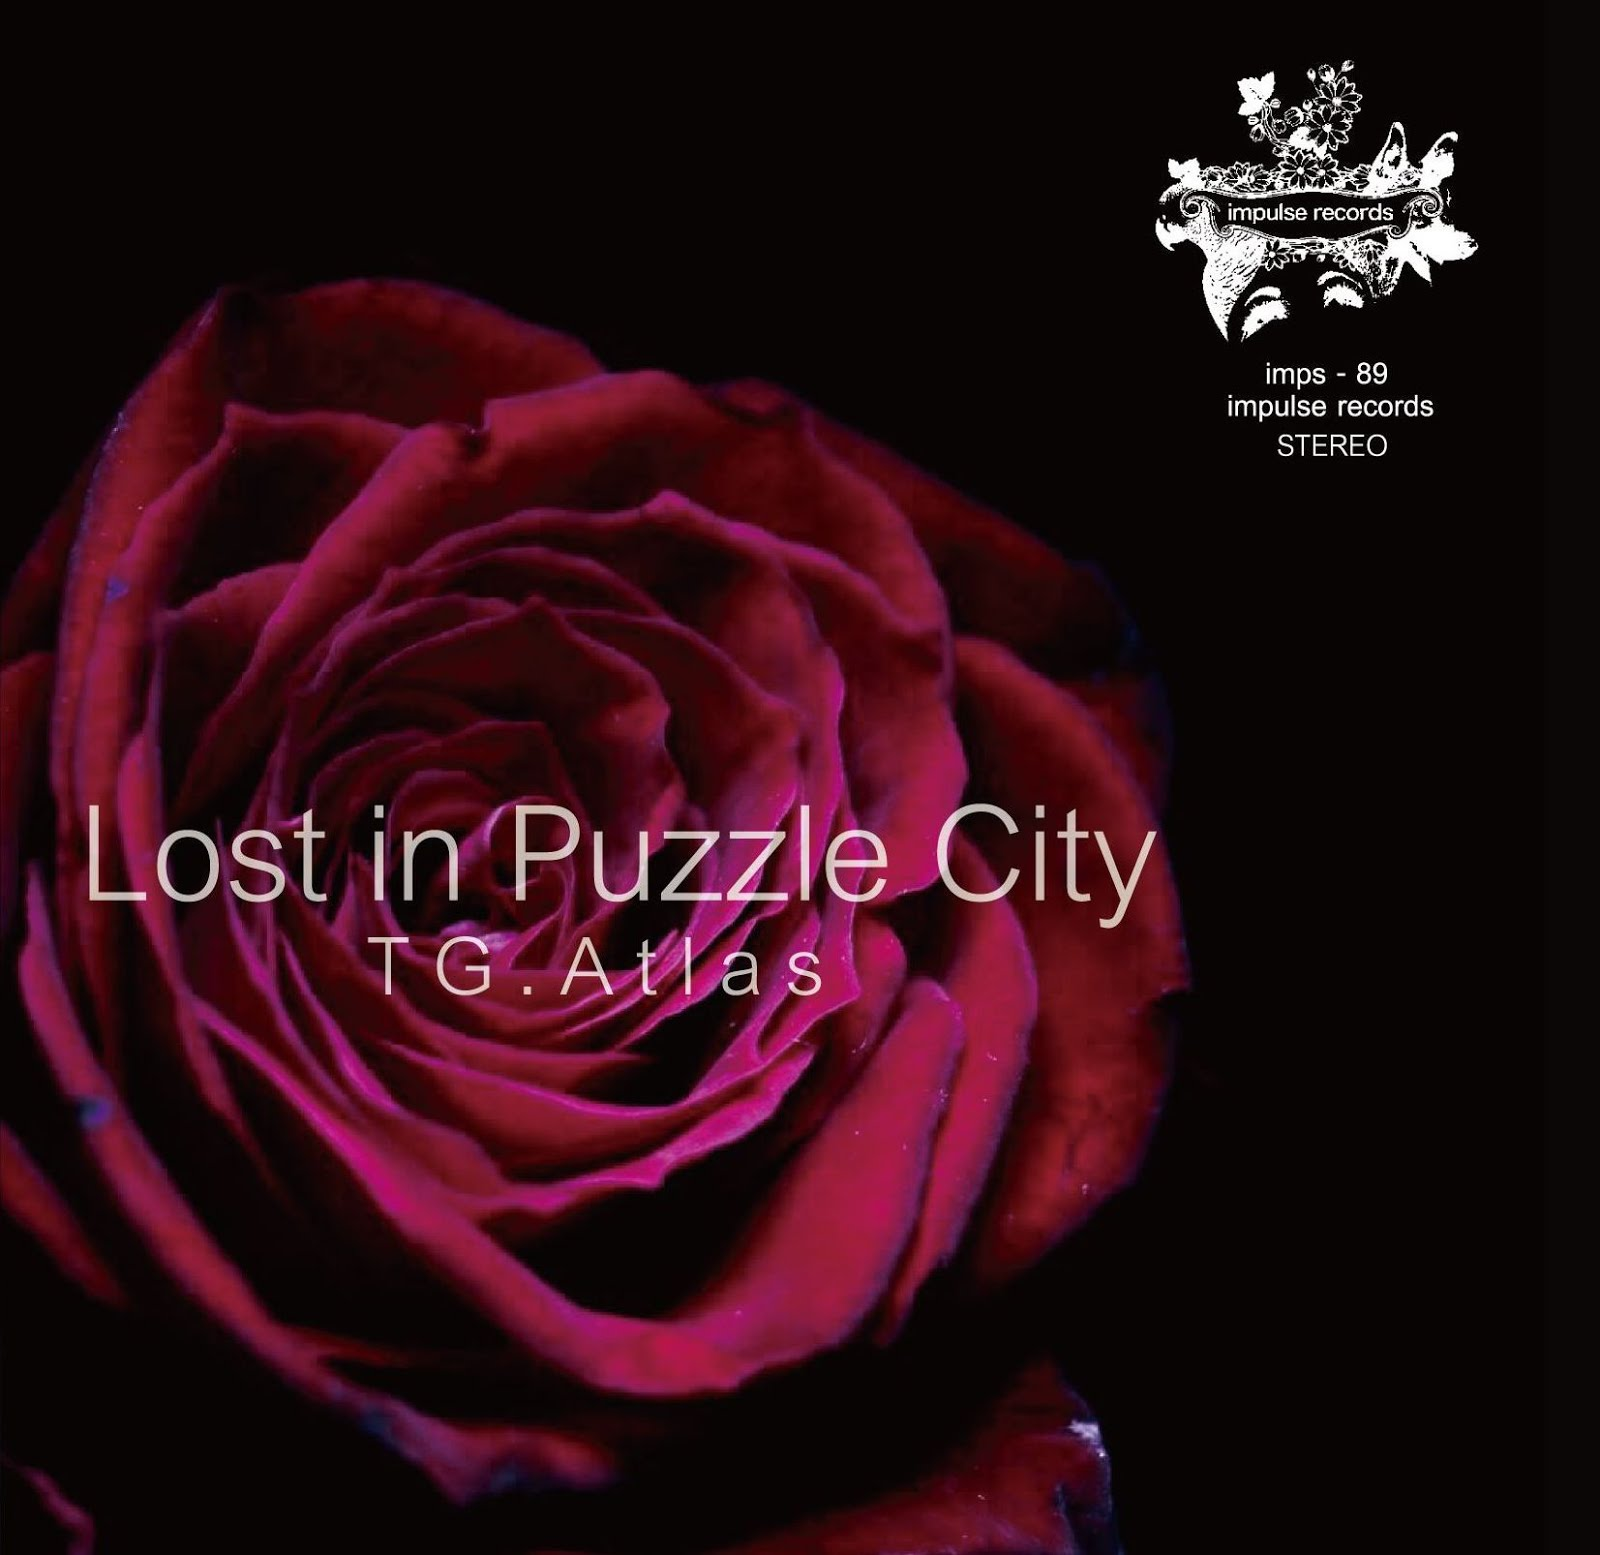 Lost in Puzzle City